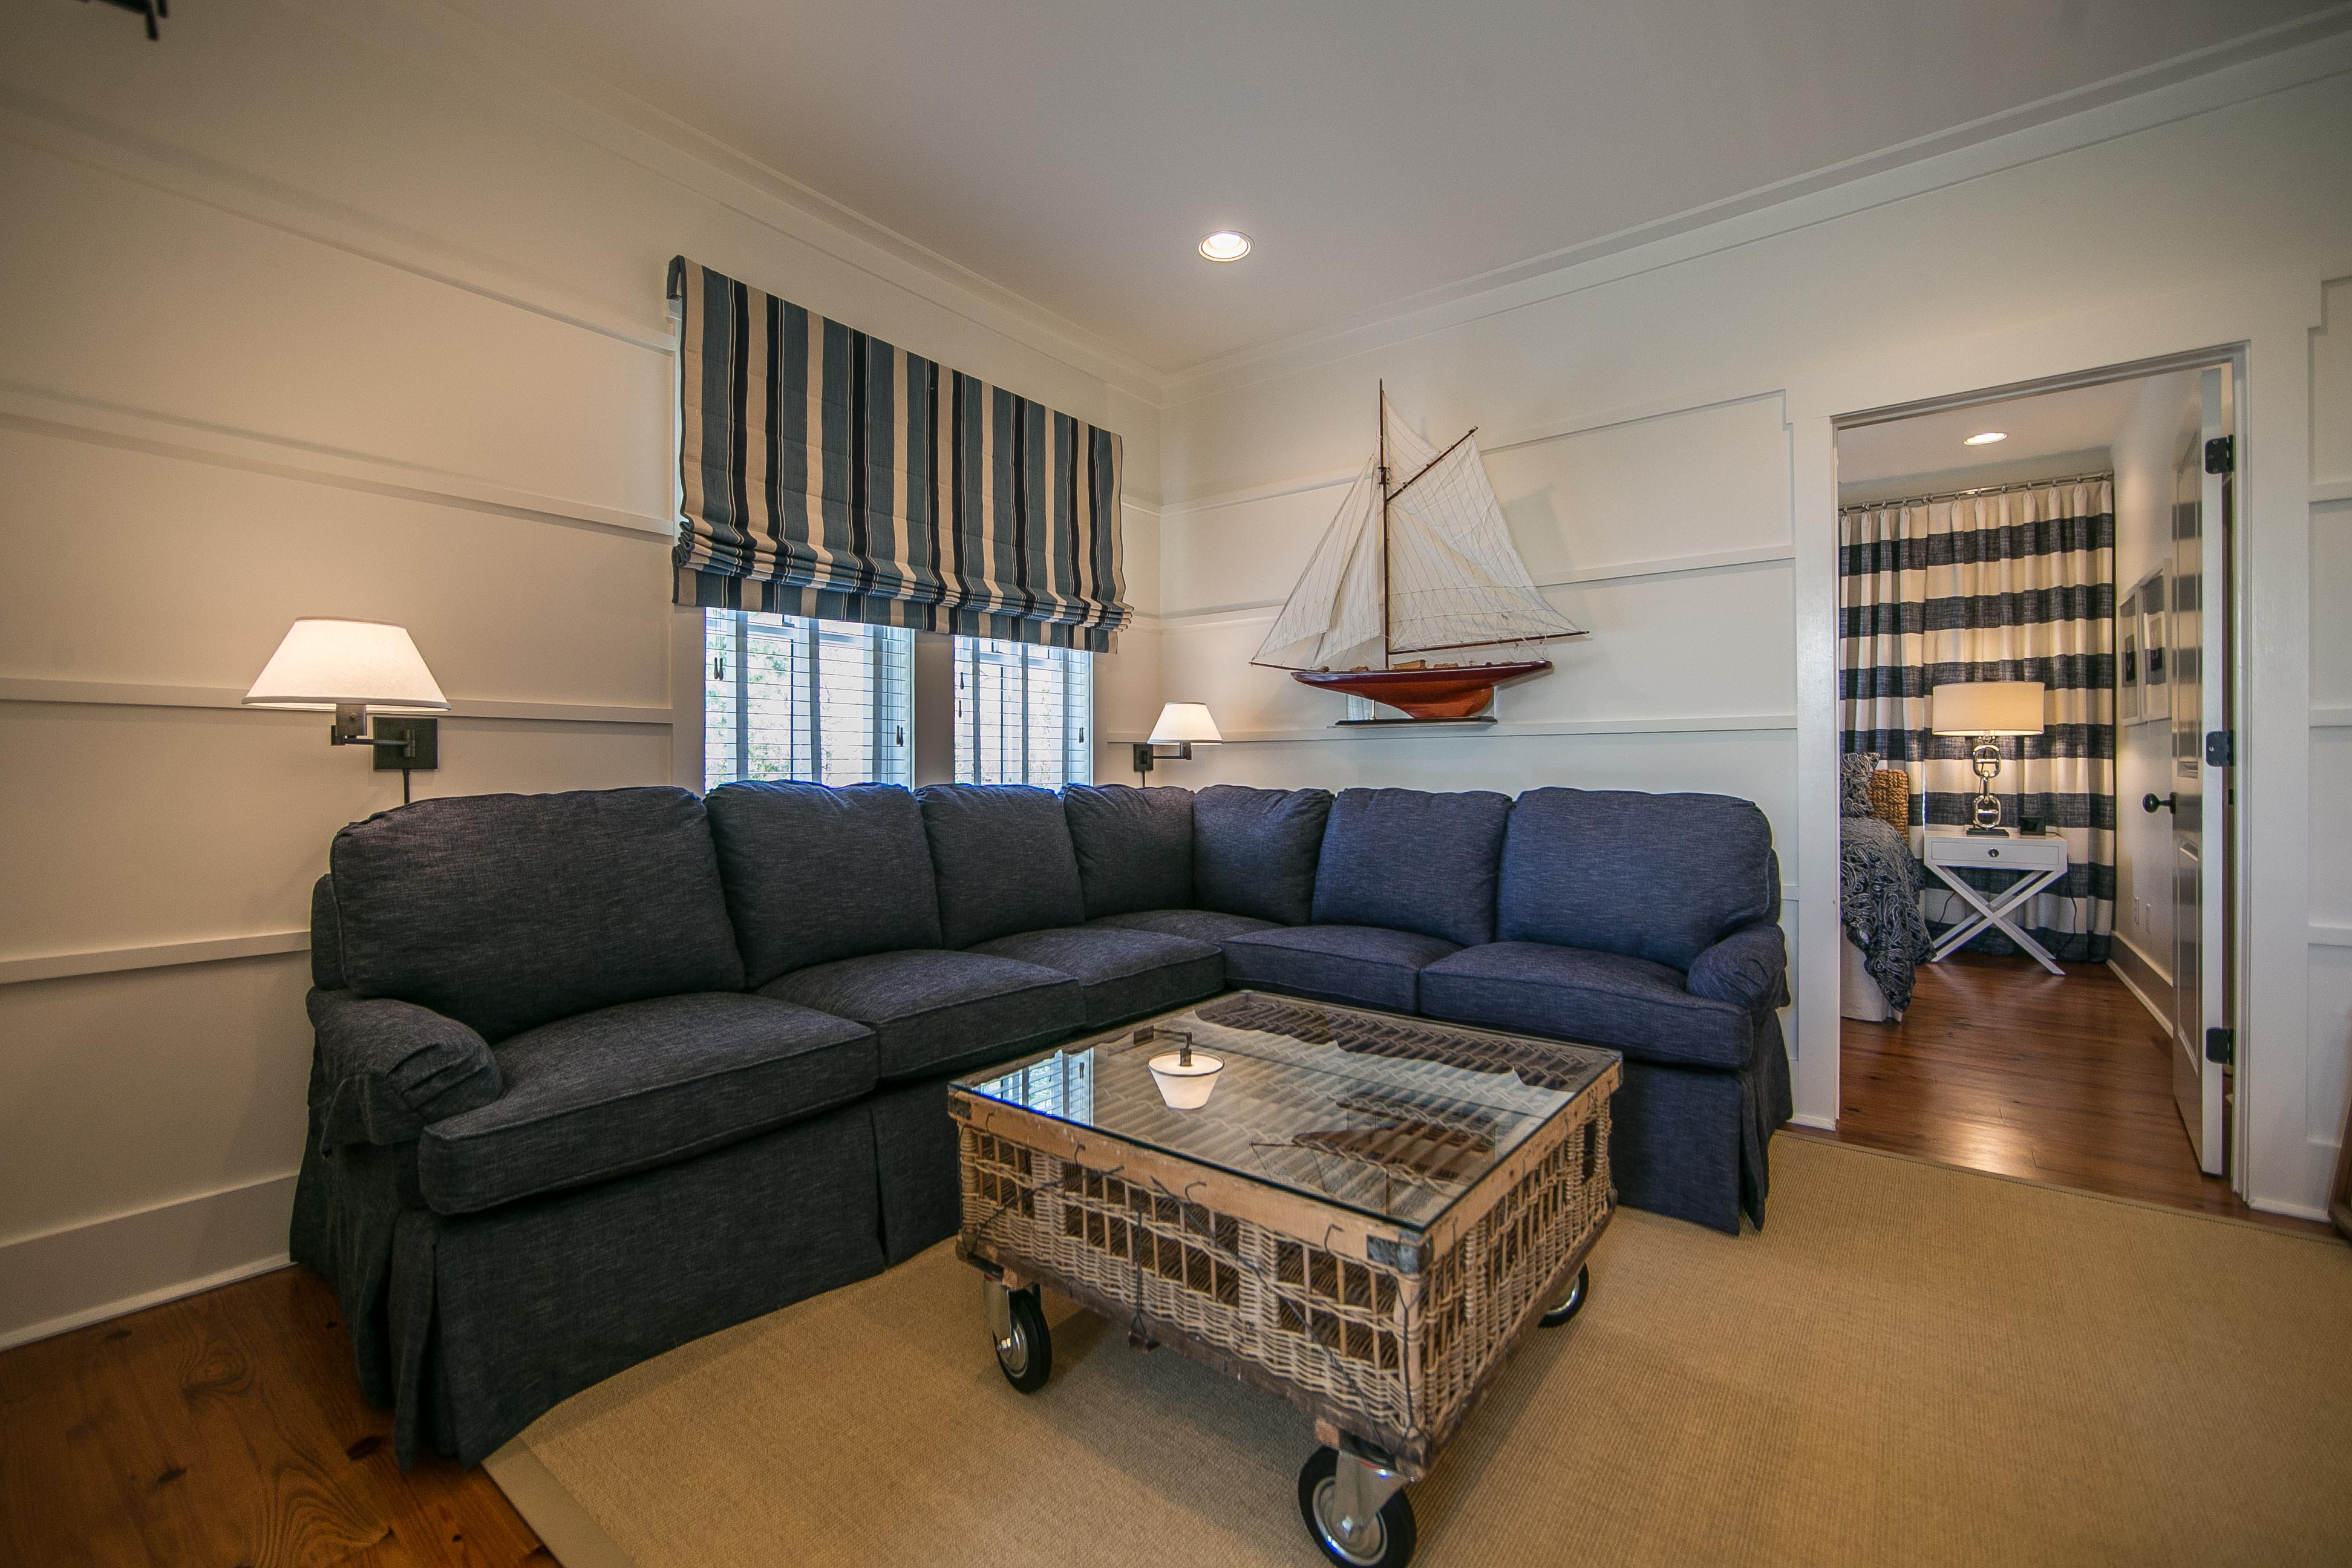 Fantastic living area at the top of the stairs with a sectional sofa and a large TV